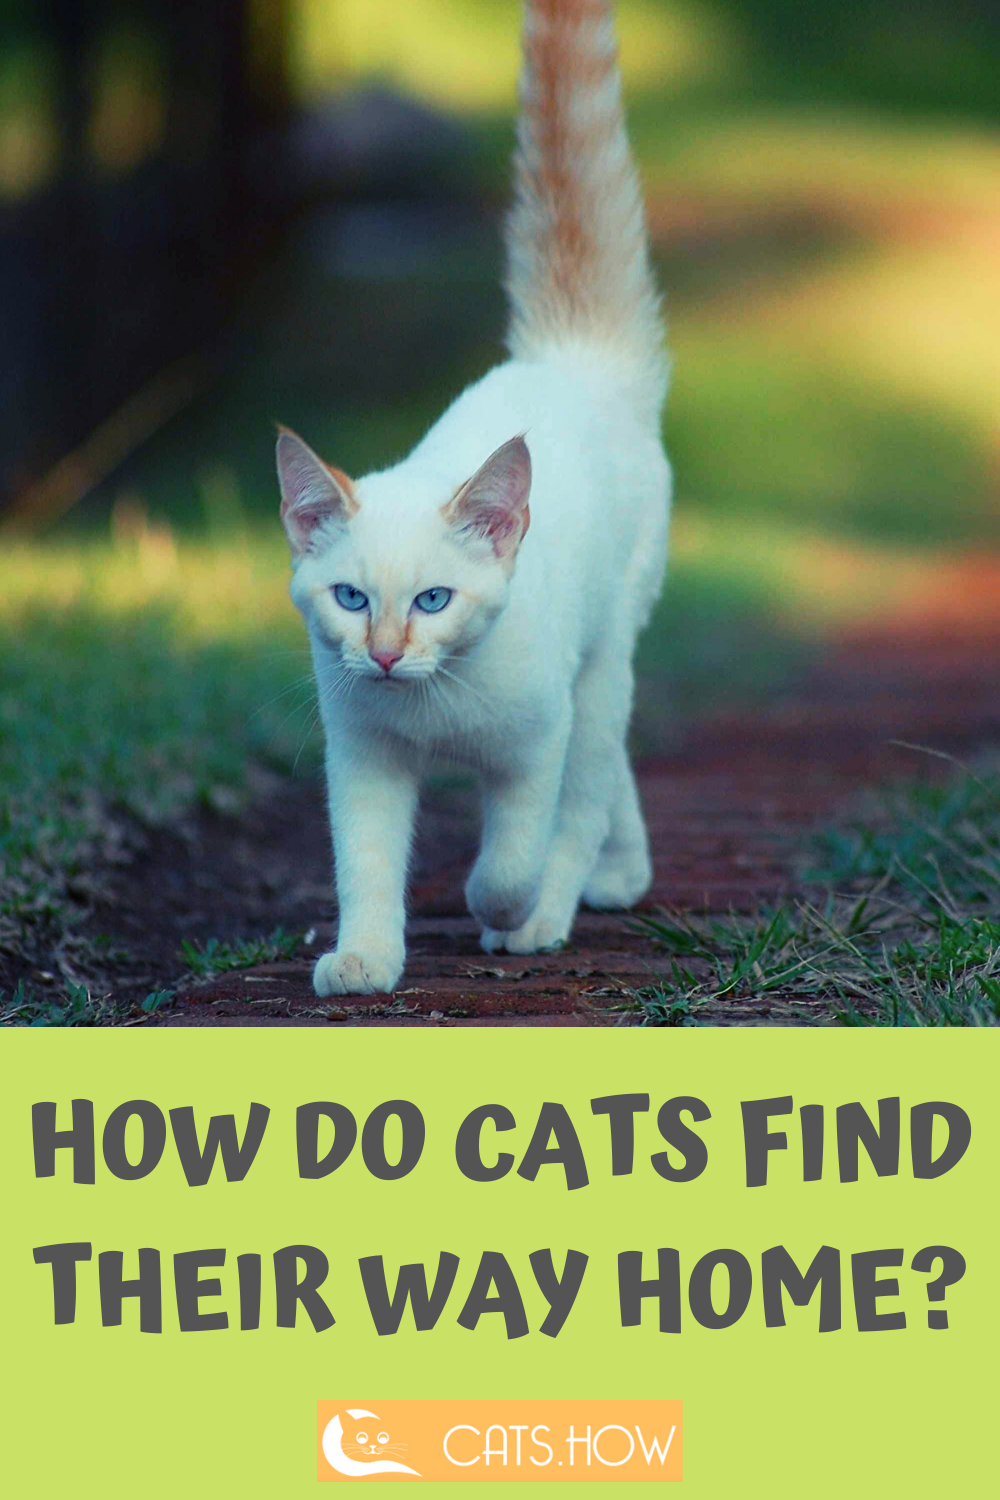 How Do Cats Find Their Way Home Cats Cat Facts Kitten Cartoon